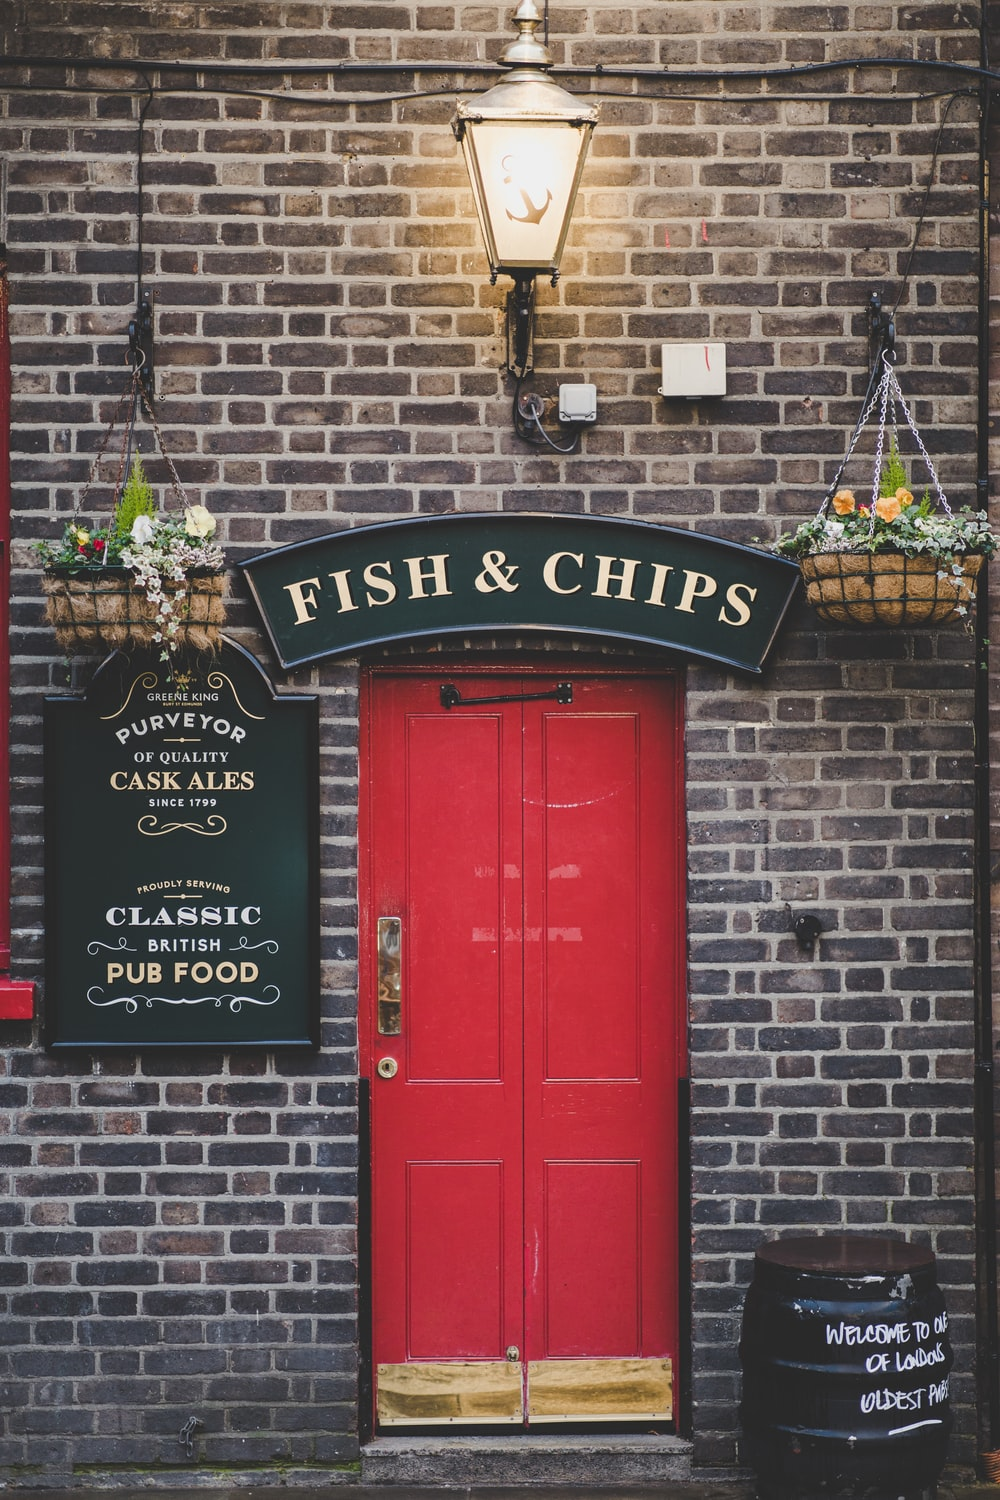 Fish & Chips signage over red door